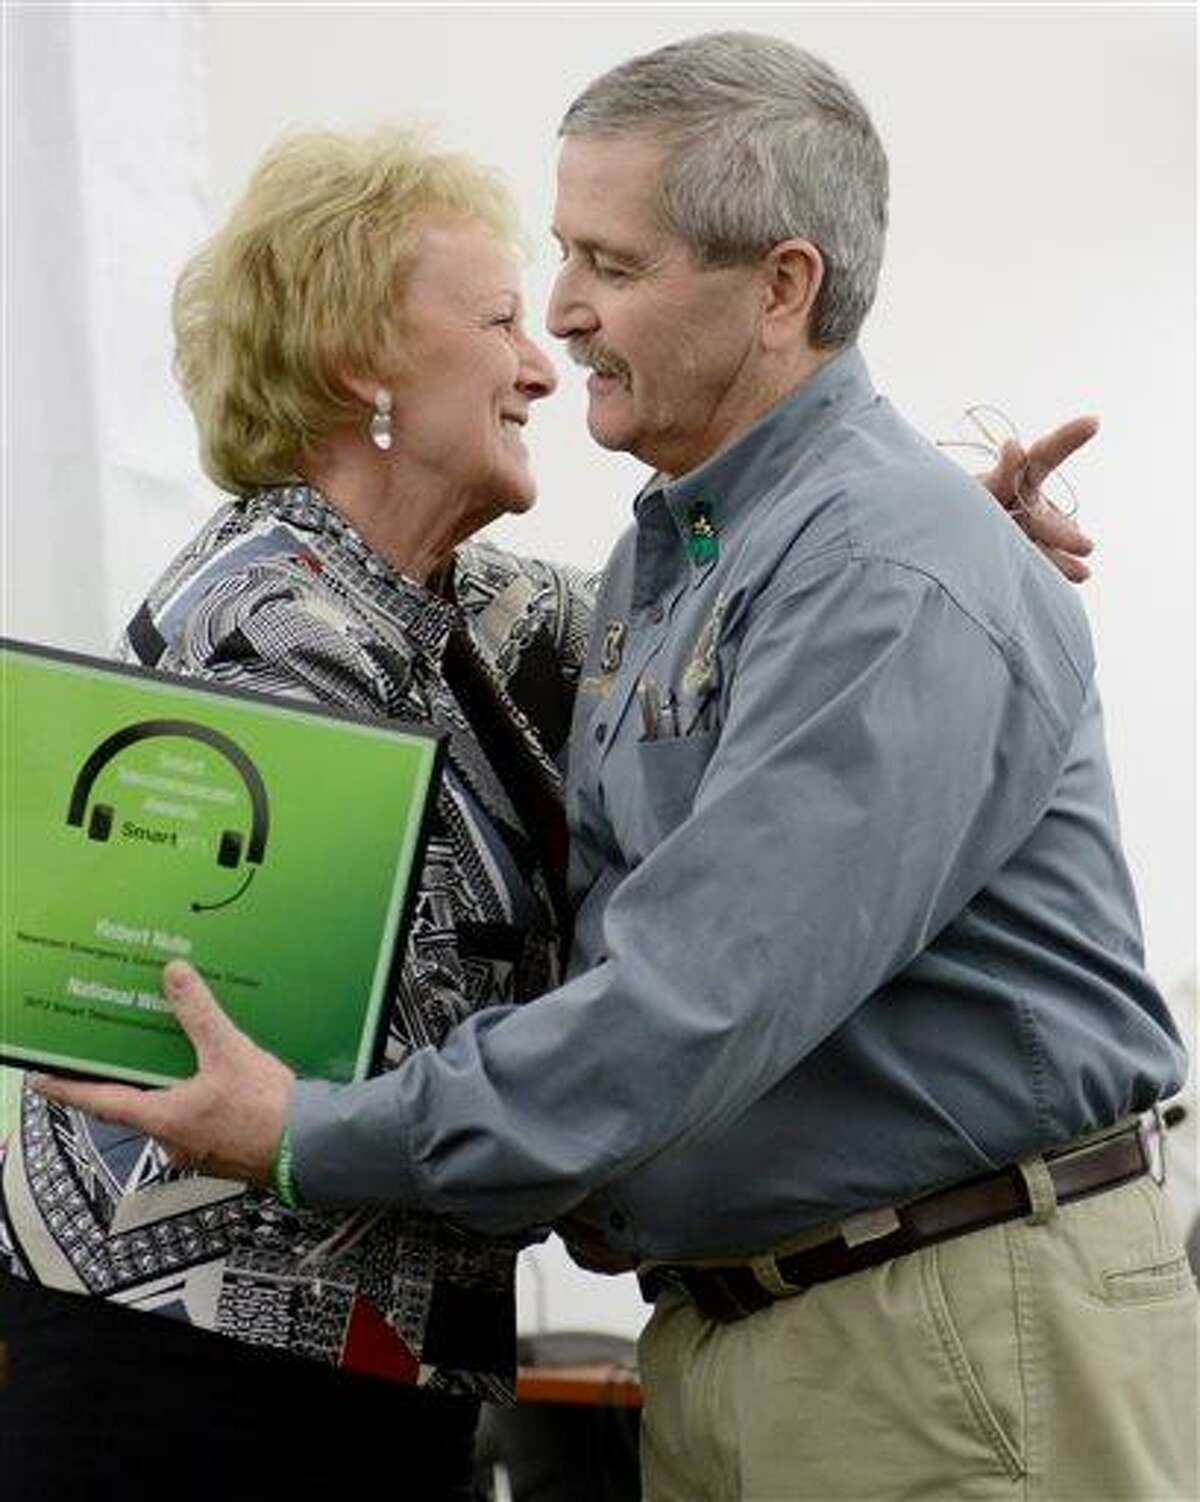 In this April 17, 2013 photo, Robert Nute, right, is congratulated by Newtown First Selectman Pat Llodra after winning an emergency telecommunications award, at the Newtown Municipal Center in Newtown, Conn. Nute, of the Newtown Emergency Communications Center, handled dispatch calls during the Sandy Hook Elementary School shooting on Dec. 14, 2012. The dispatchers at the Newtown center have won praise from officials and colleagues around the country for their role in the response to the shooting. The call center director said the staff has been lifted by the outpouring of support as the dispatchers recover emotionally, along with the community that still peppers them with calls over anything out of the ordinary. (AP Photo/The News-Times, Tyler Sizemore) MANDATORY CREDIT